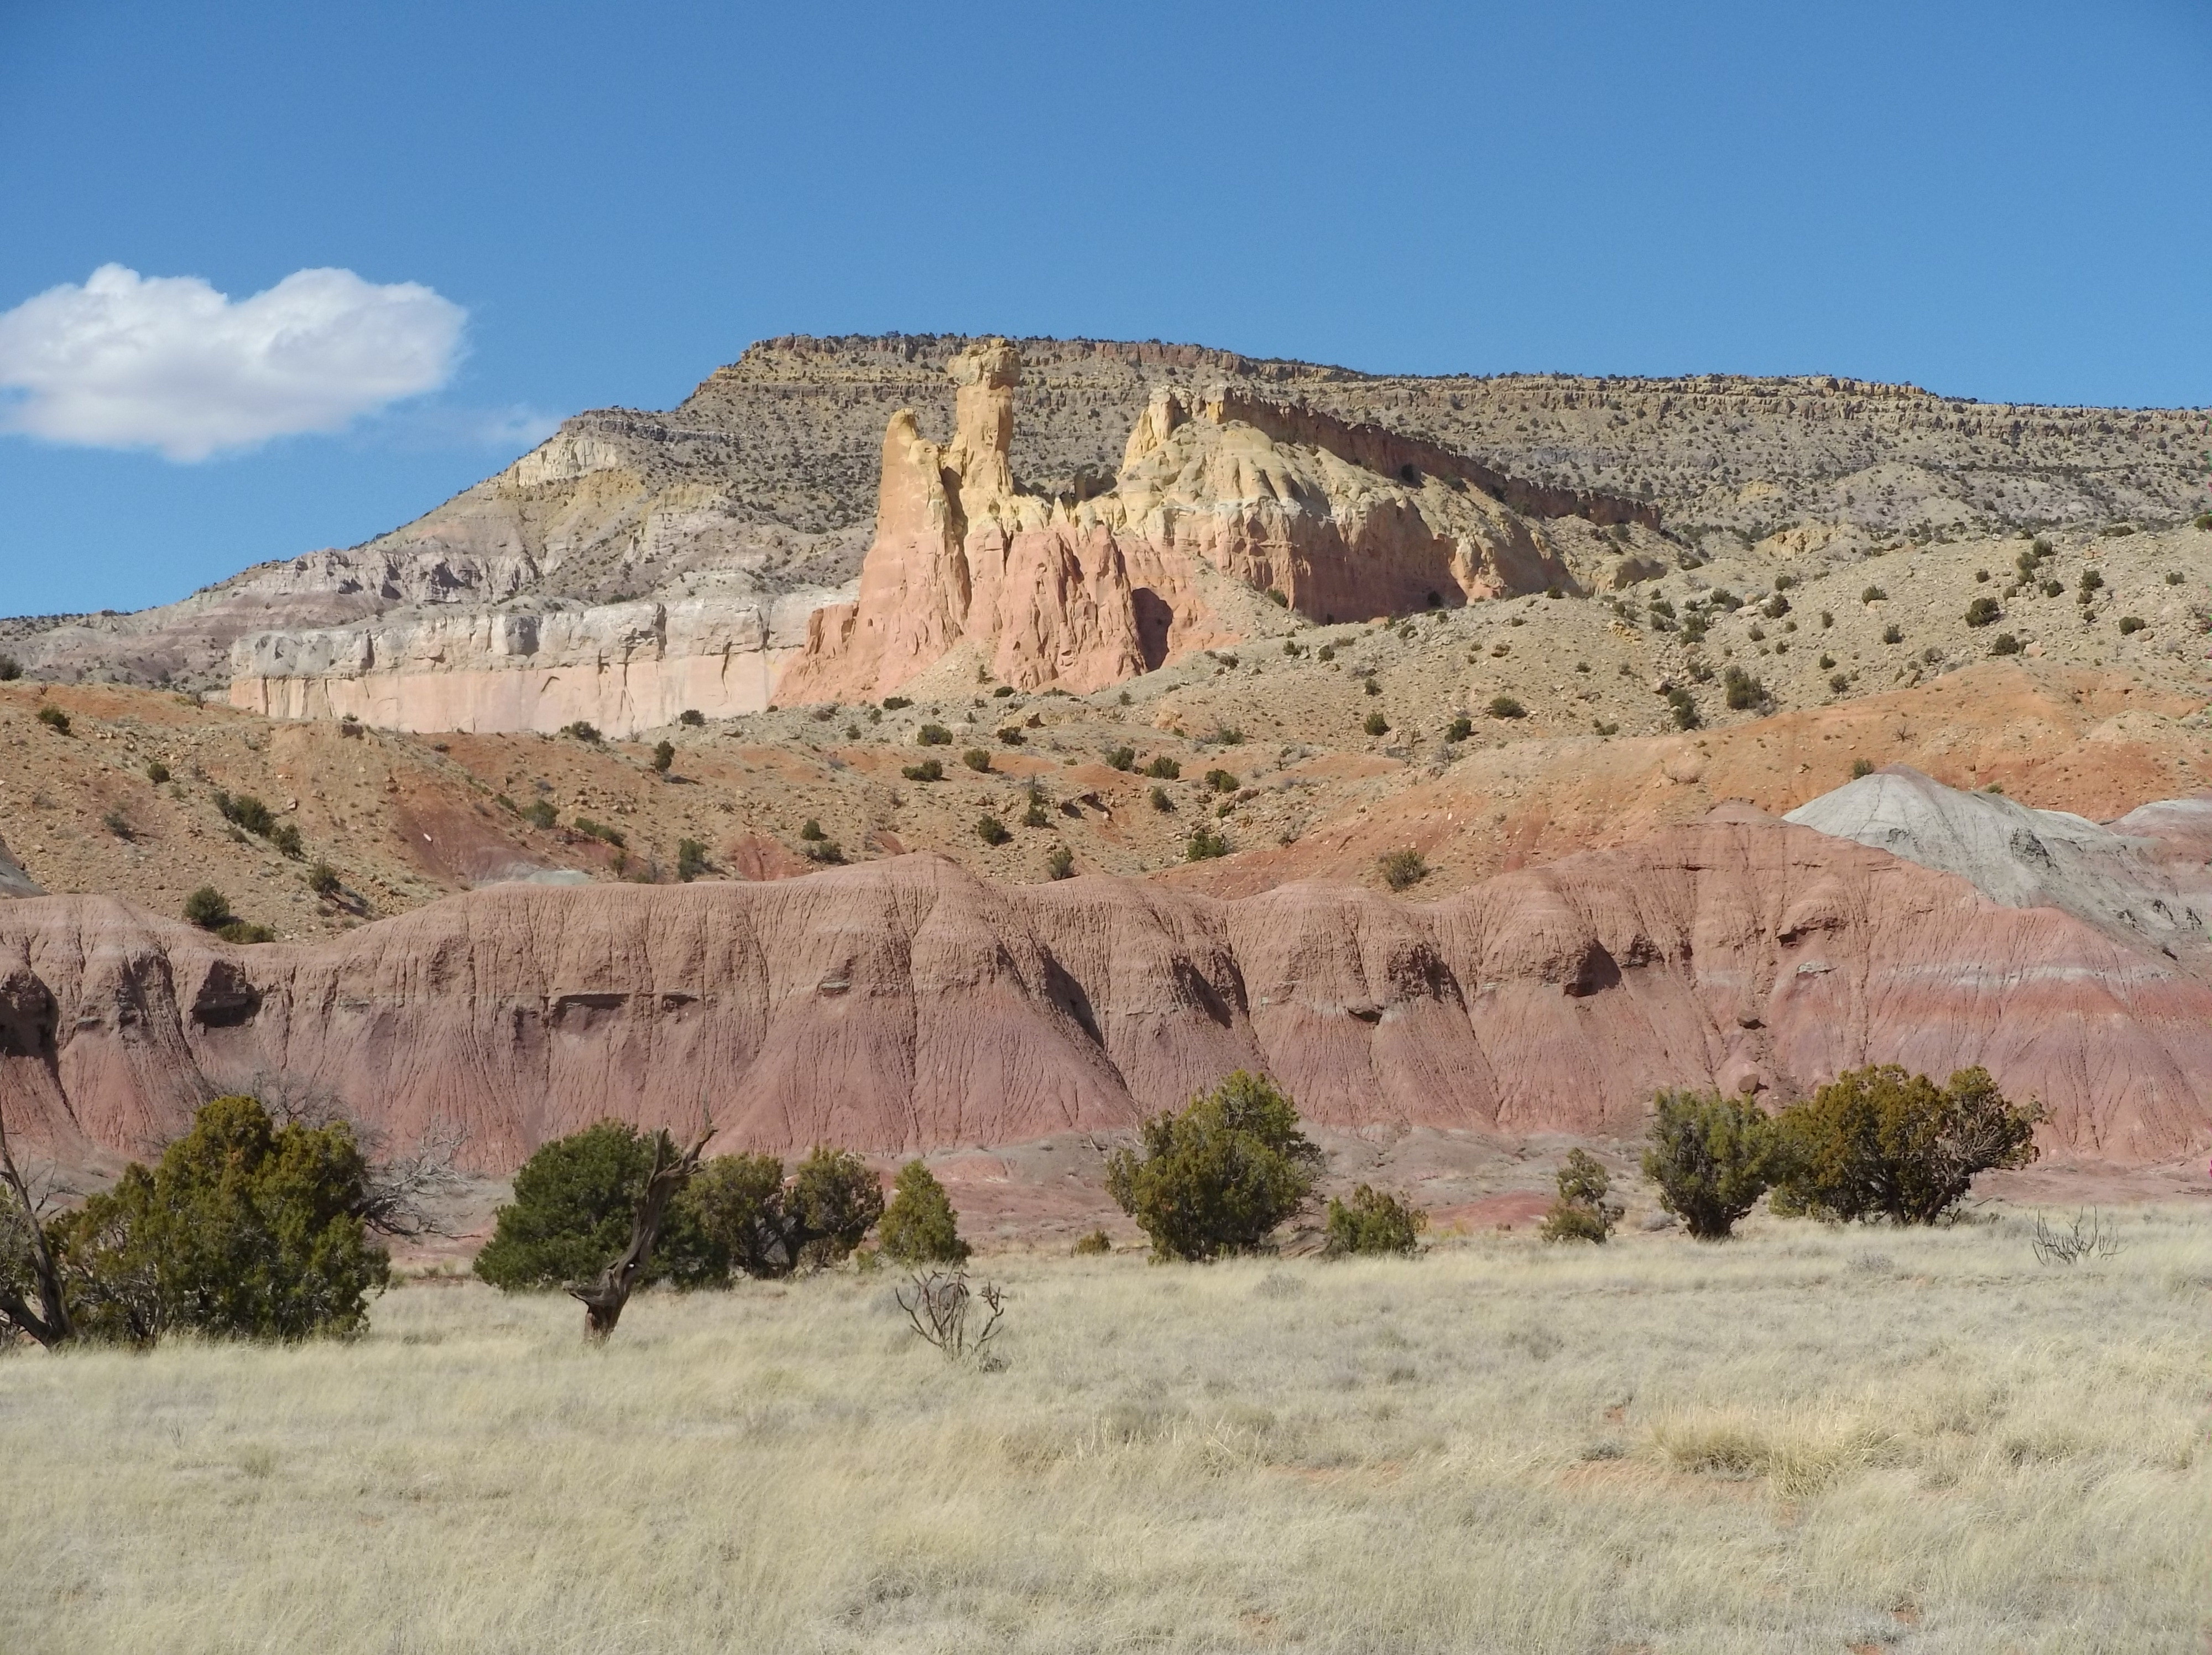 nature's small red hills. A private road not far from the Visitor's Center and close to O'Keeffe's home, reveals these colorful hills.